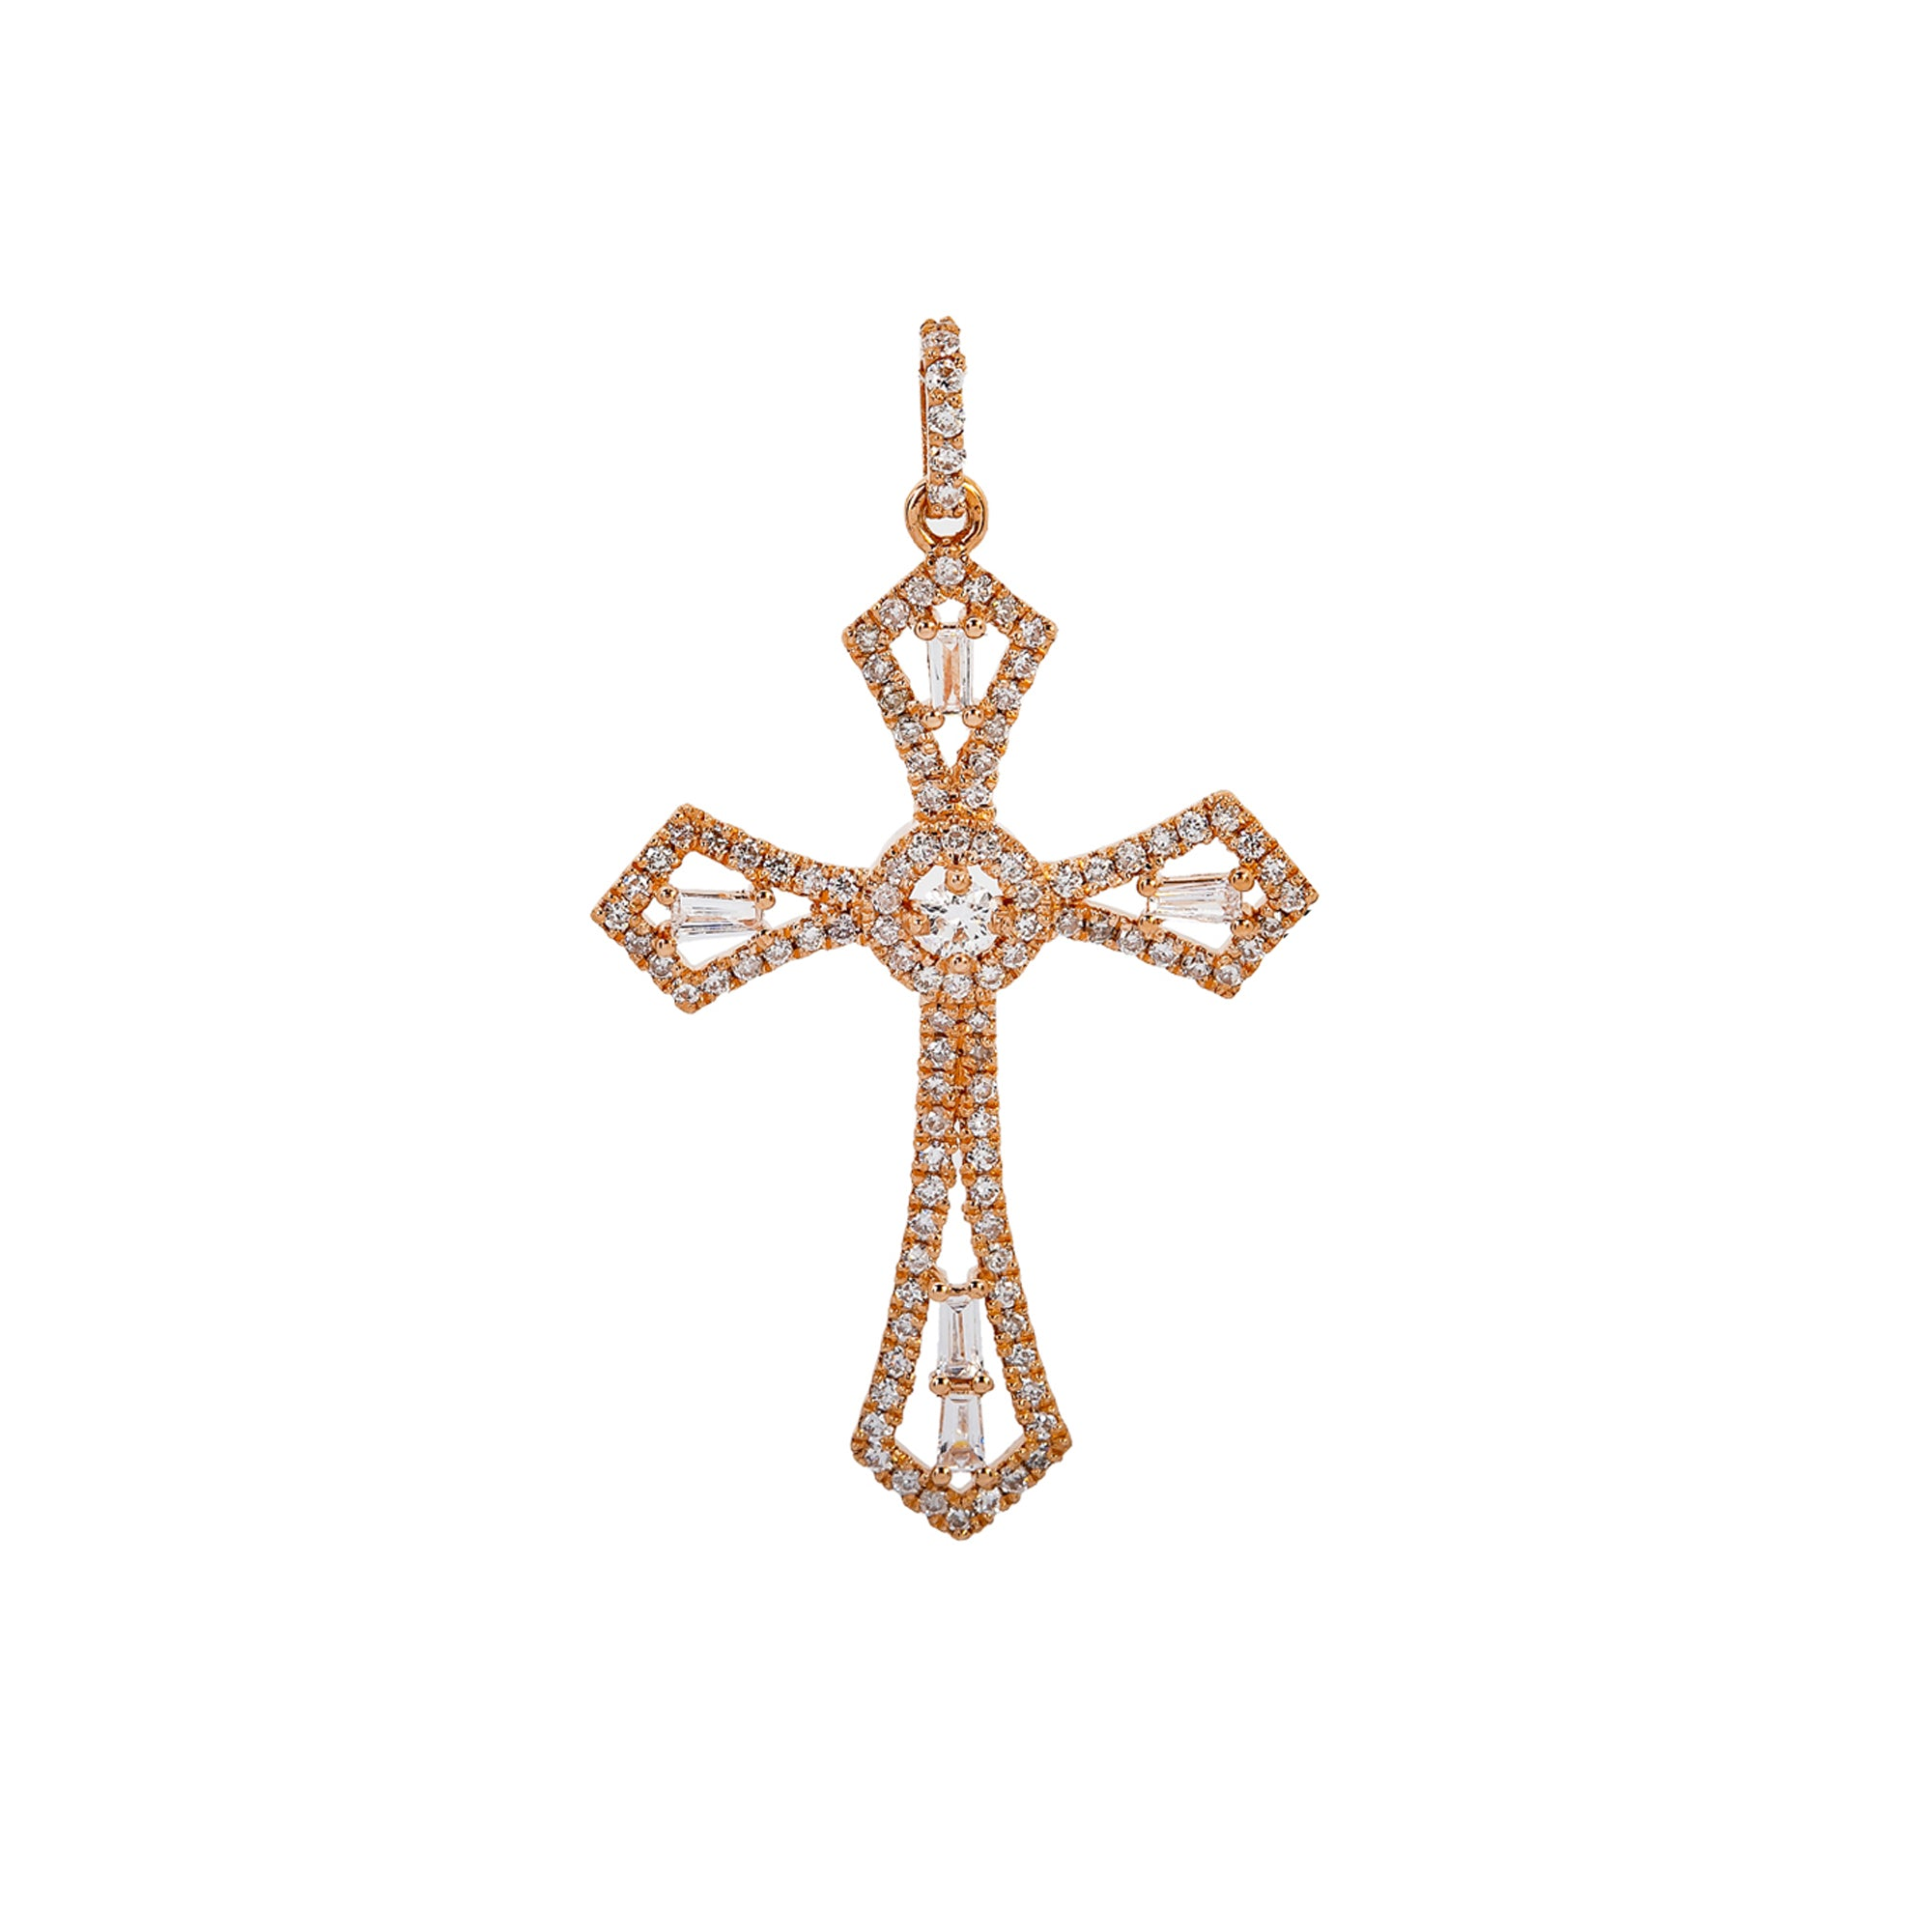 14K Rose Gold Cross Pendant with 0.62 CT Baguette and Round Diamonds